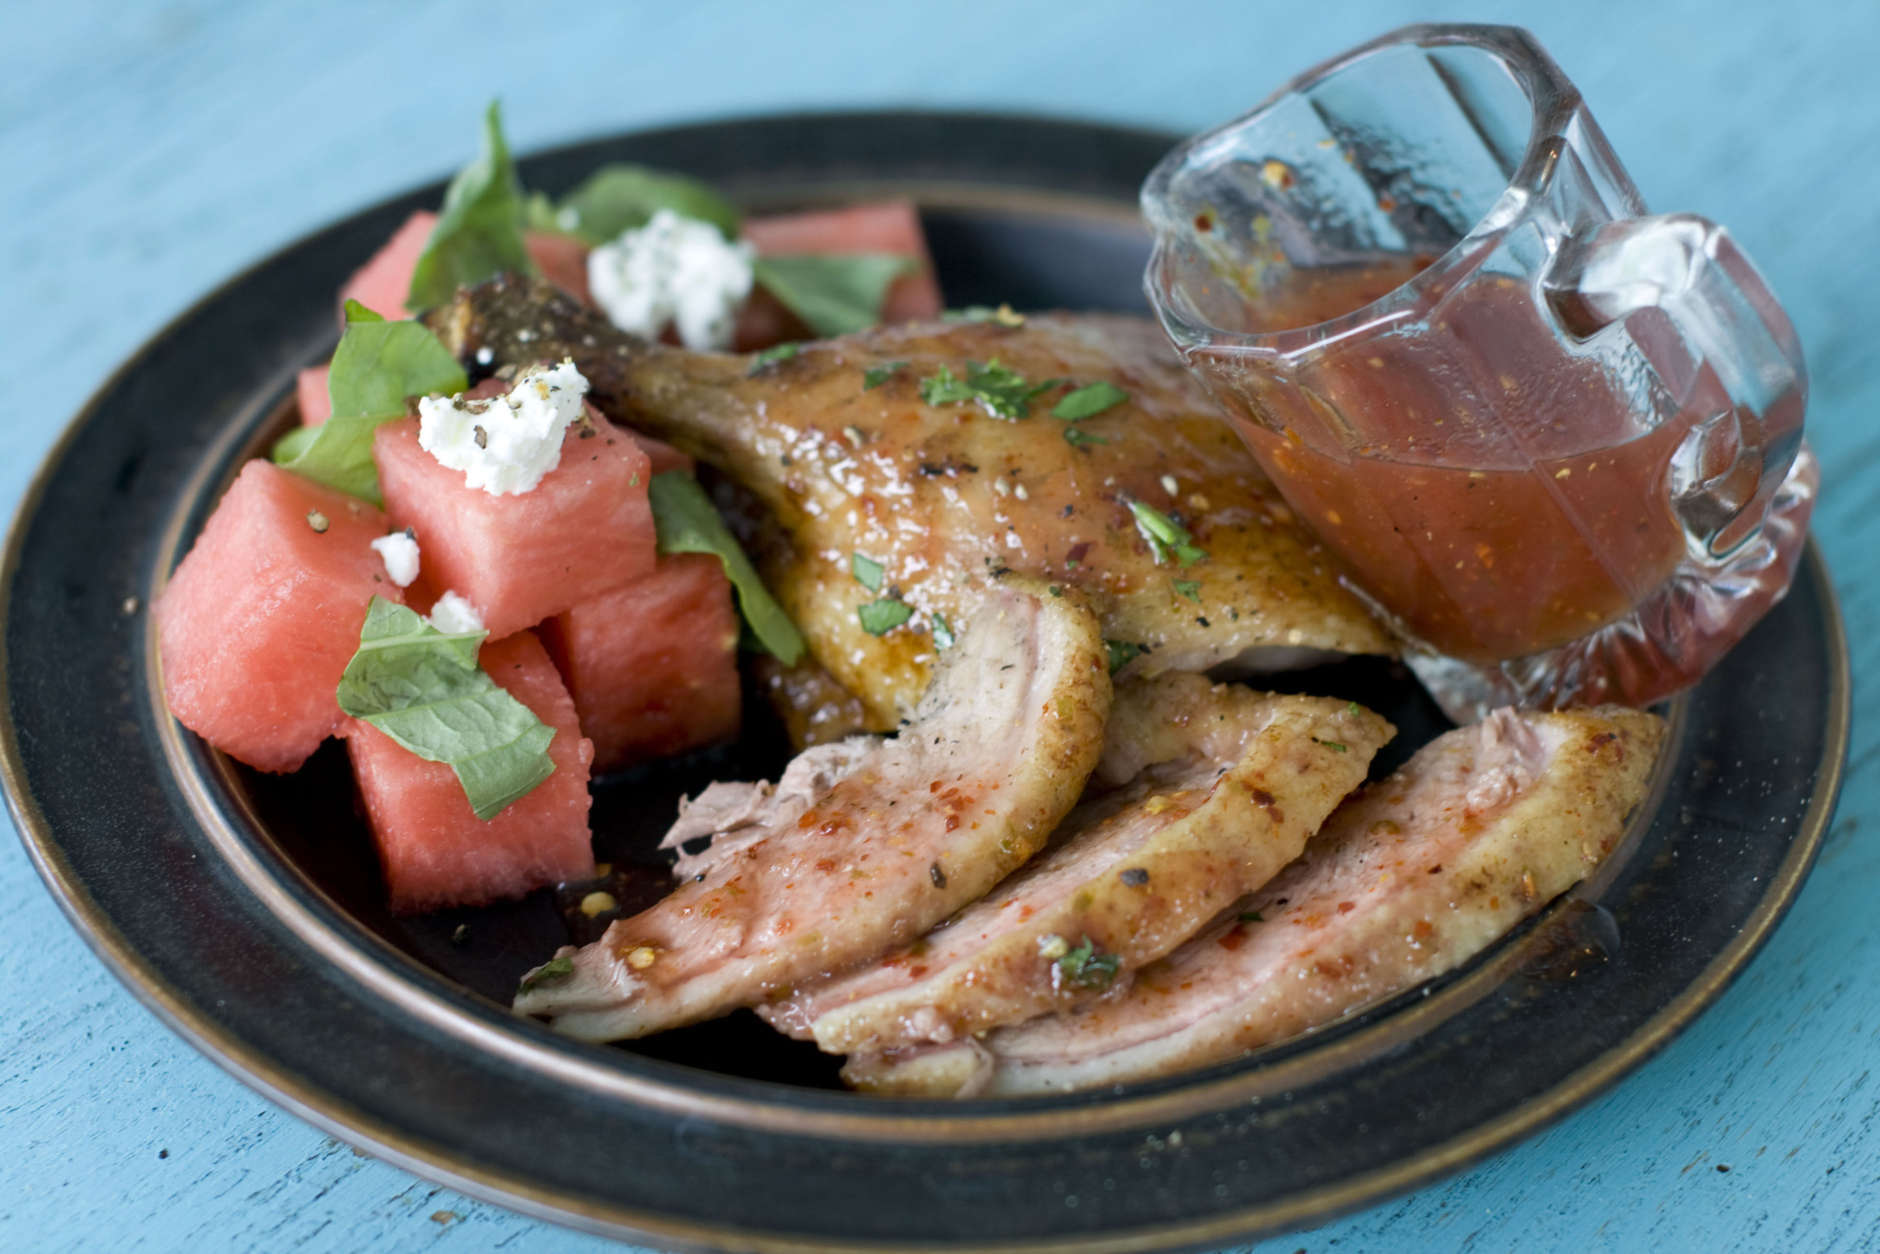 In this image taken on May 30, 2012, Elizabeth Karmel's grilled butterflied duck with spicy watermelon glaze is shown on a plate in Concord, N.H. (AP Photo/Matthew Mead)